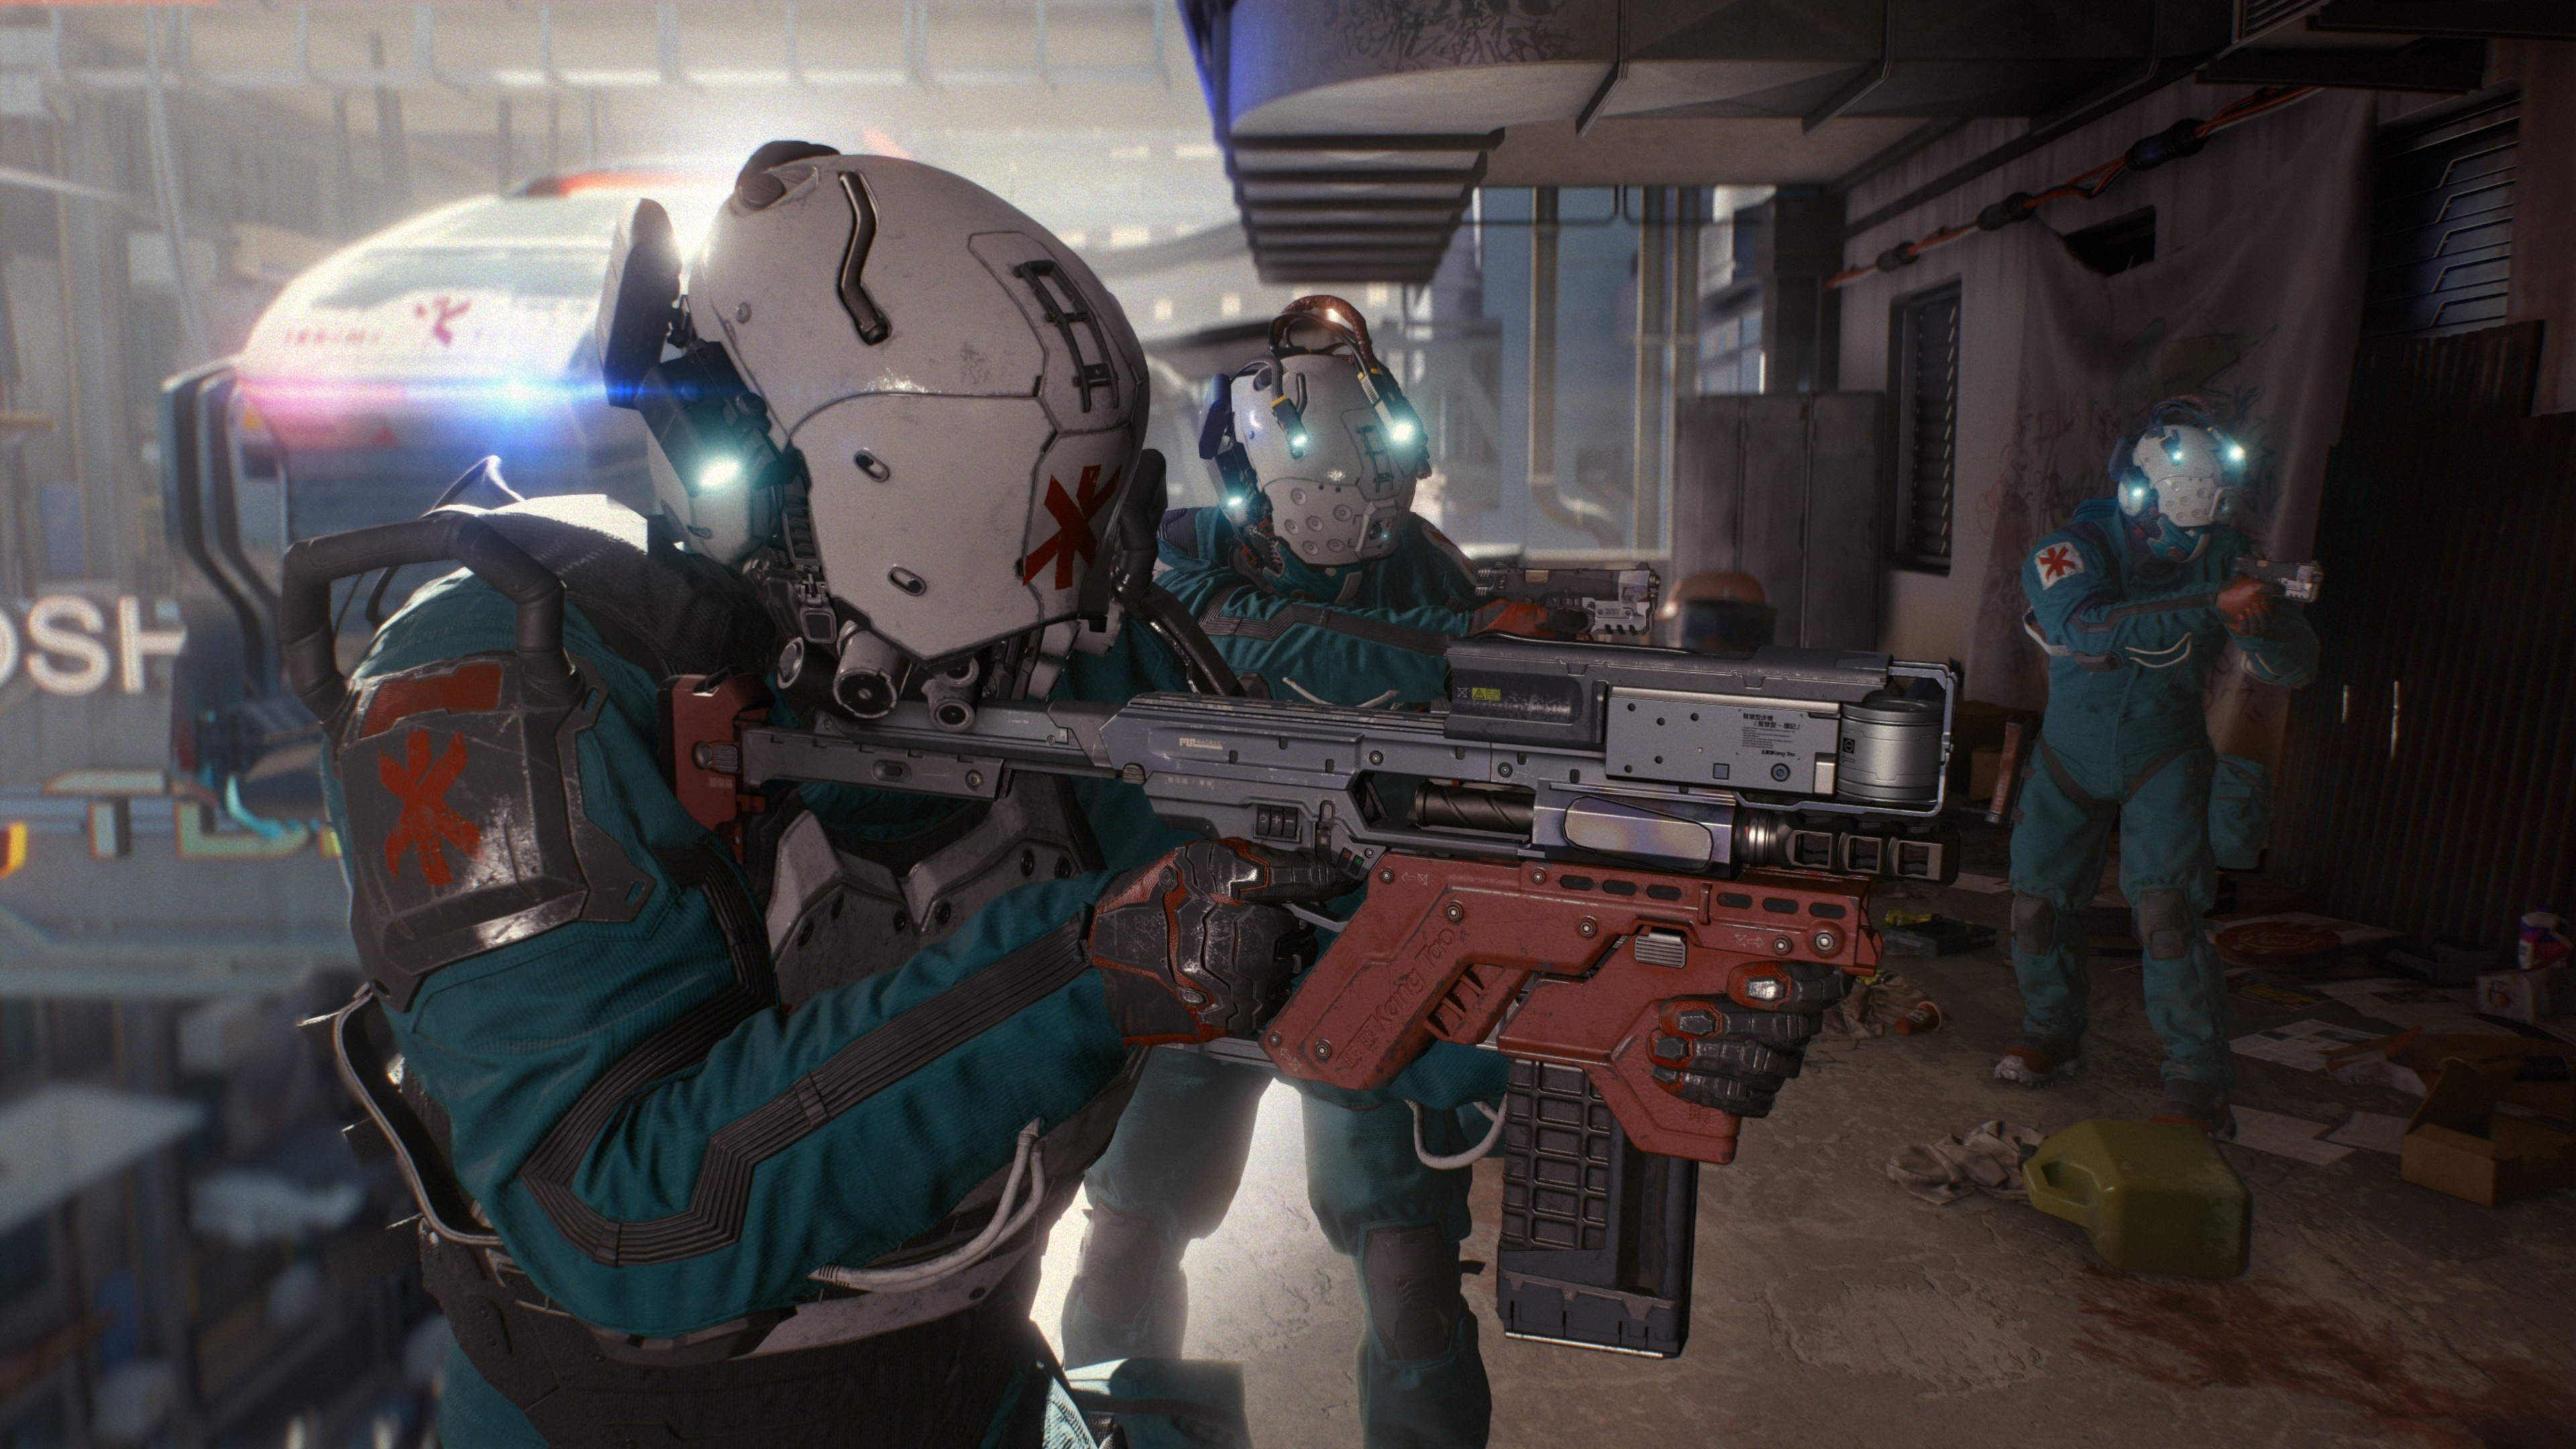 Cyberpunk 2077 Wallpapers Hd: Cyberpunk 2077 Wallpapers, Pictures, Images